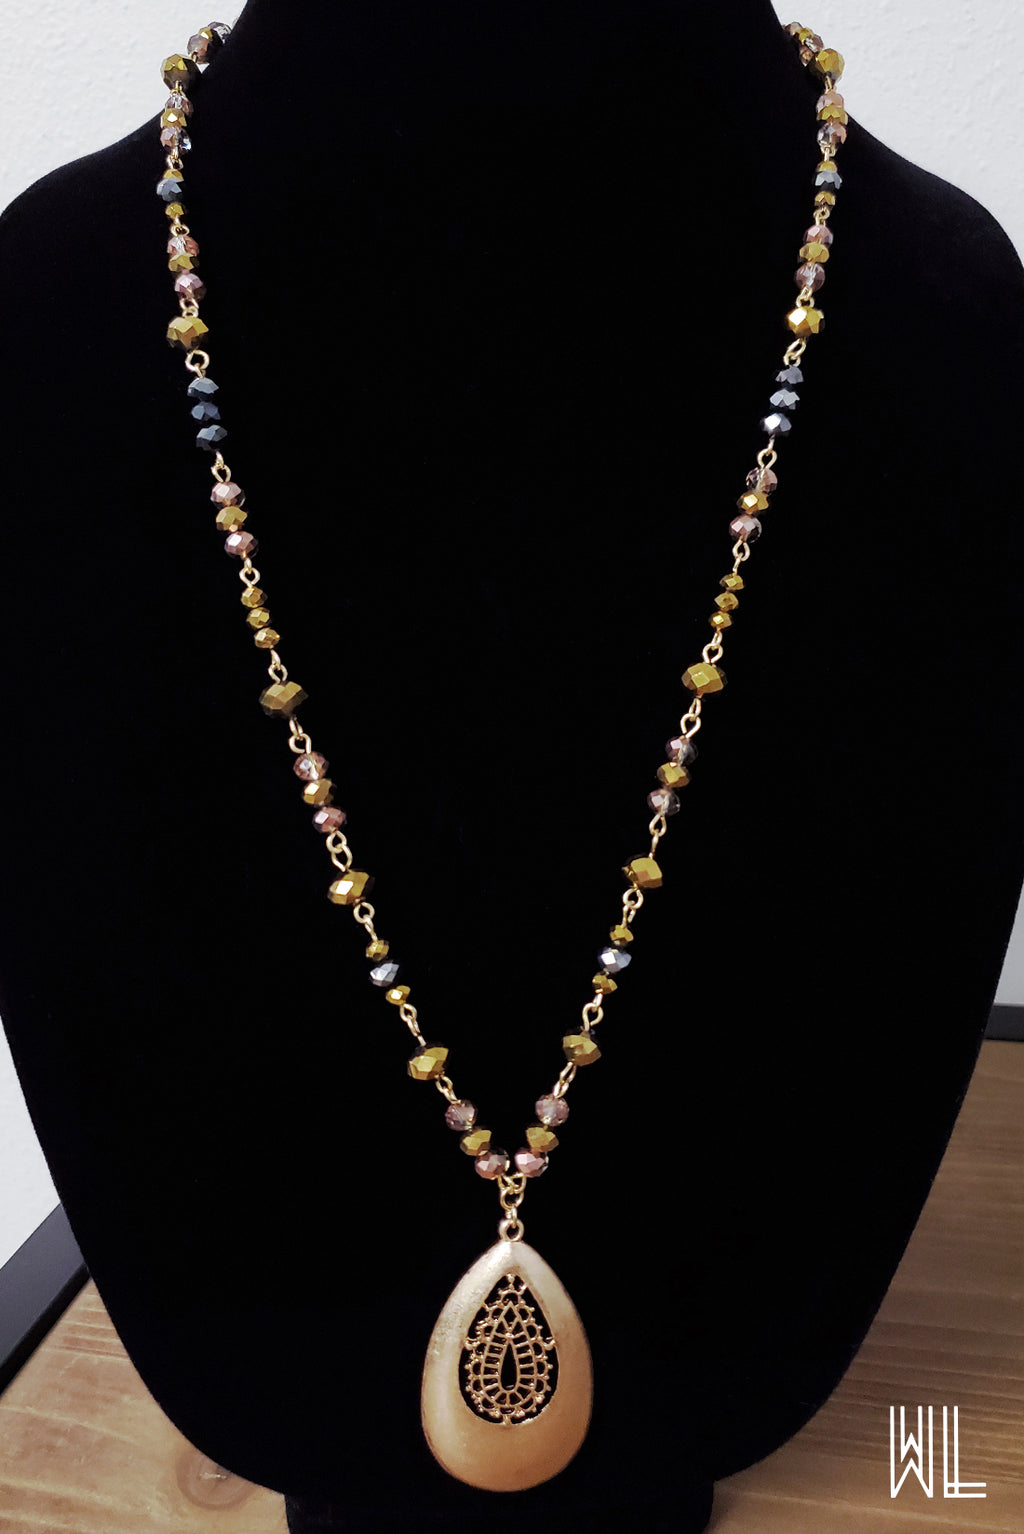 Gold Teardrop Pendant + Beads Necklace